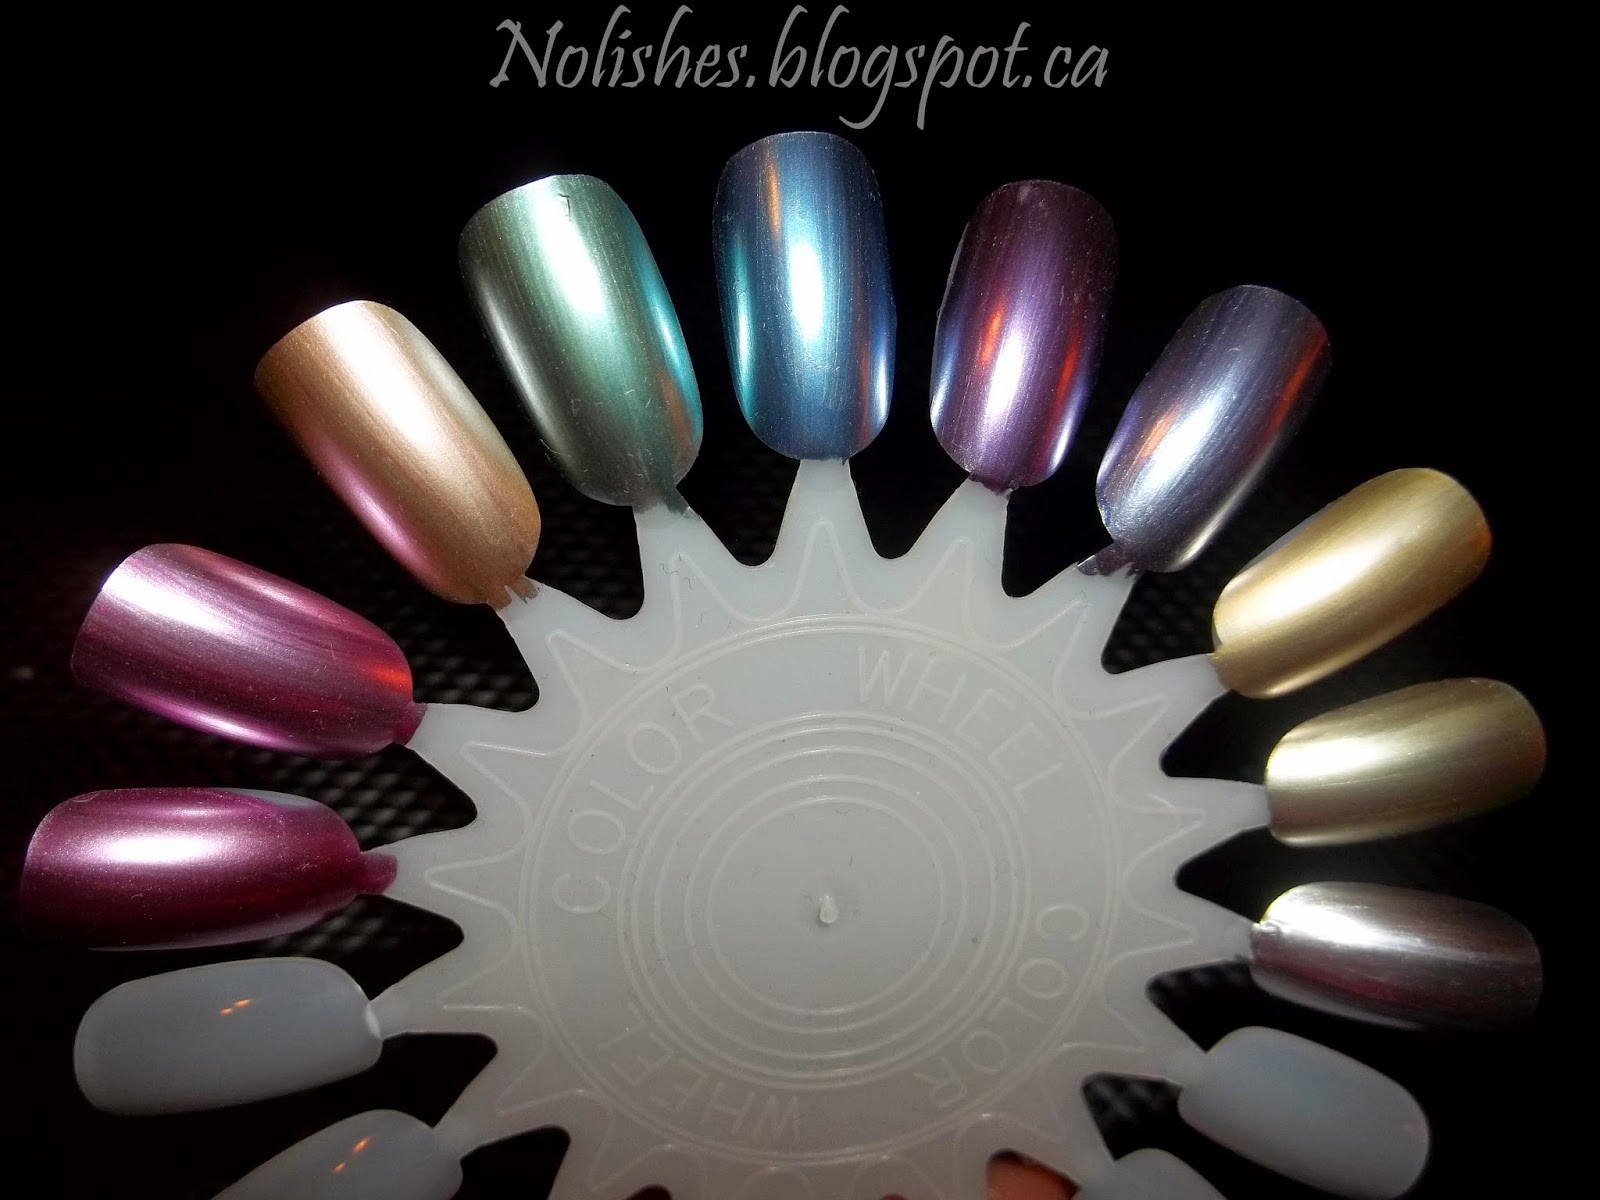 Sally Hansen Color Foil Swatches: Pink Platinum, Titanium Flush, Rose Copper, Minted Metal, Cobalt Chrome, Purple Alloy, Leaden Lilac, Liquid Gold, Yellow Gold, and Sterling Silver